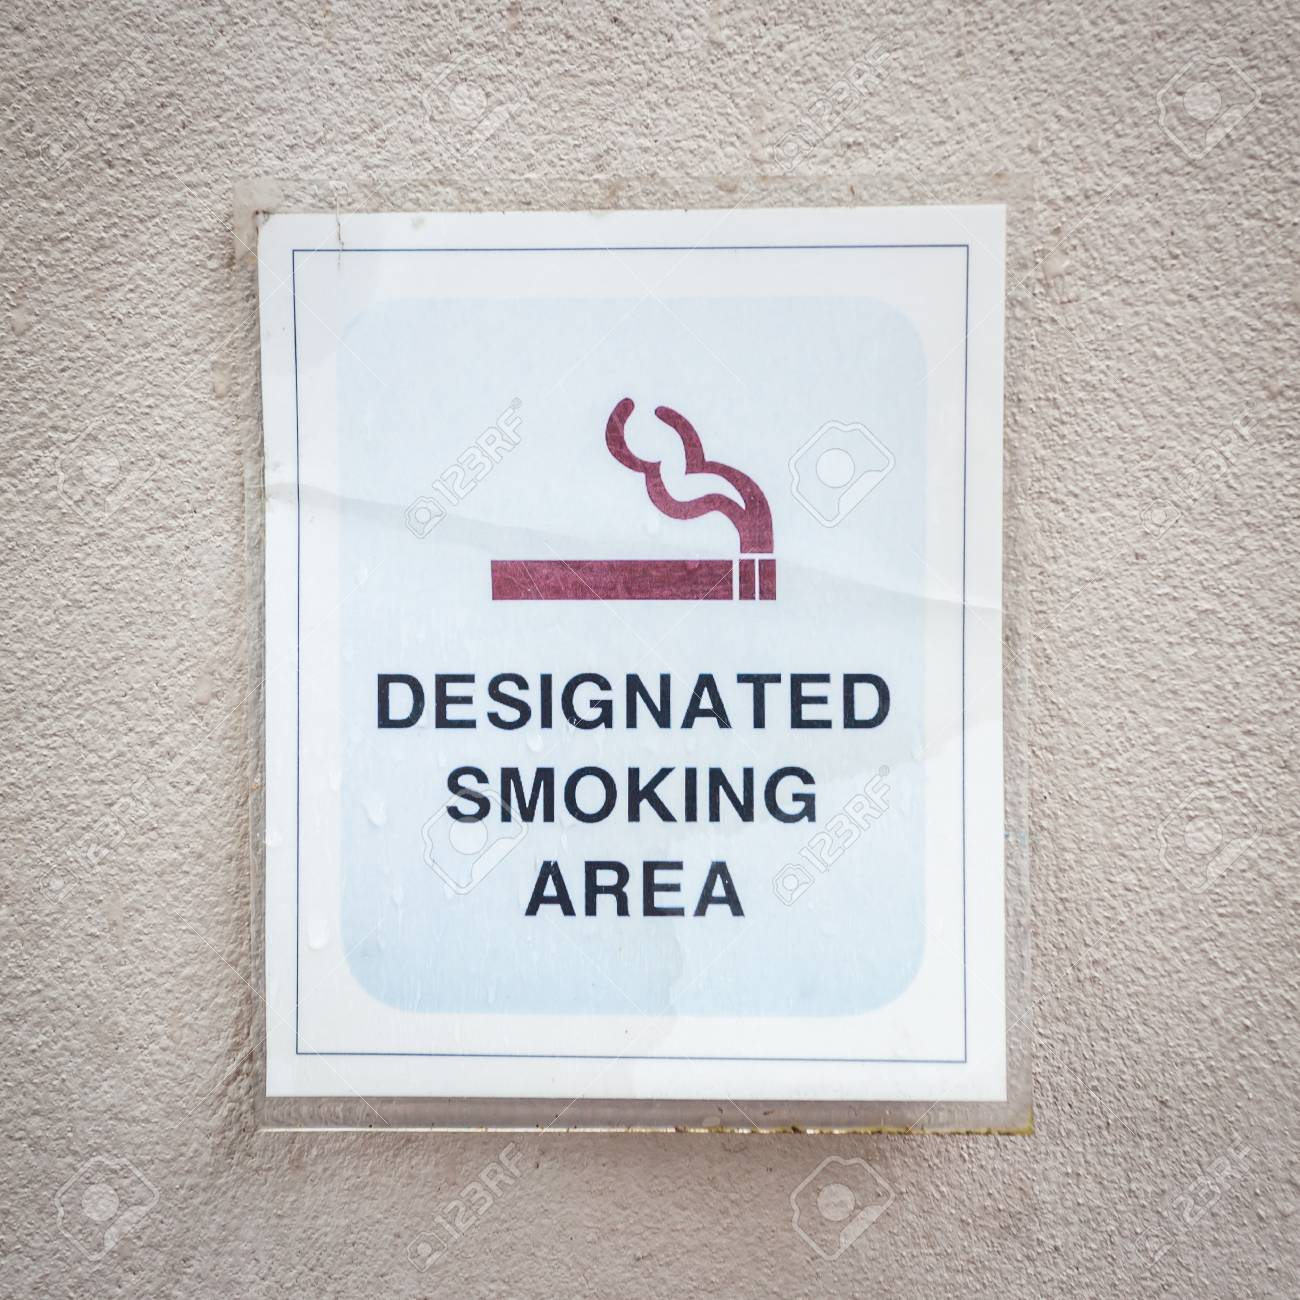 Tag for designated smoking area on wall Stock Photo - 22975577